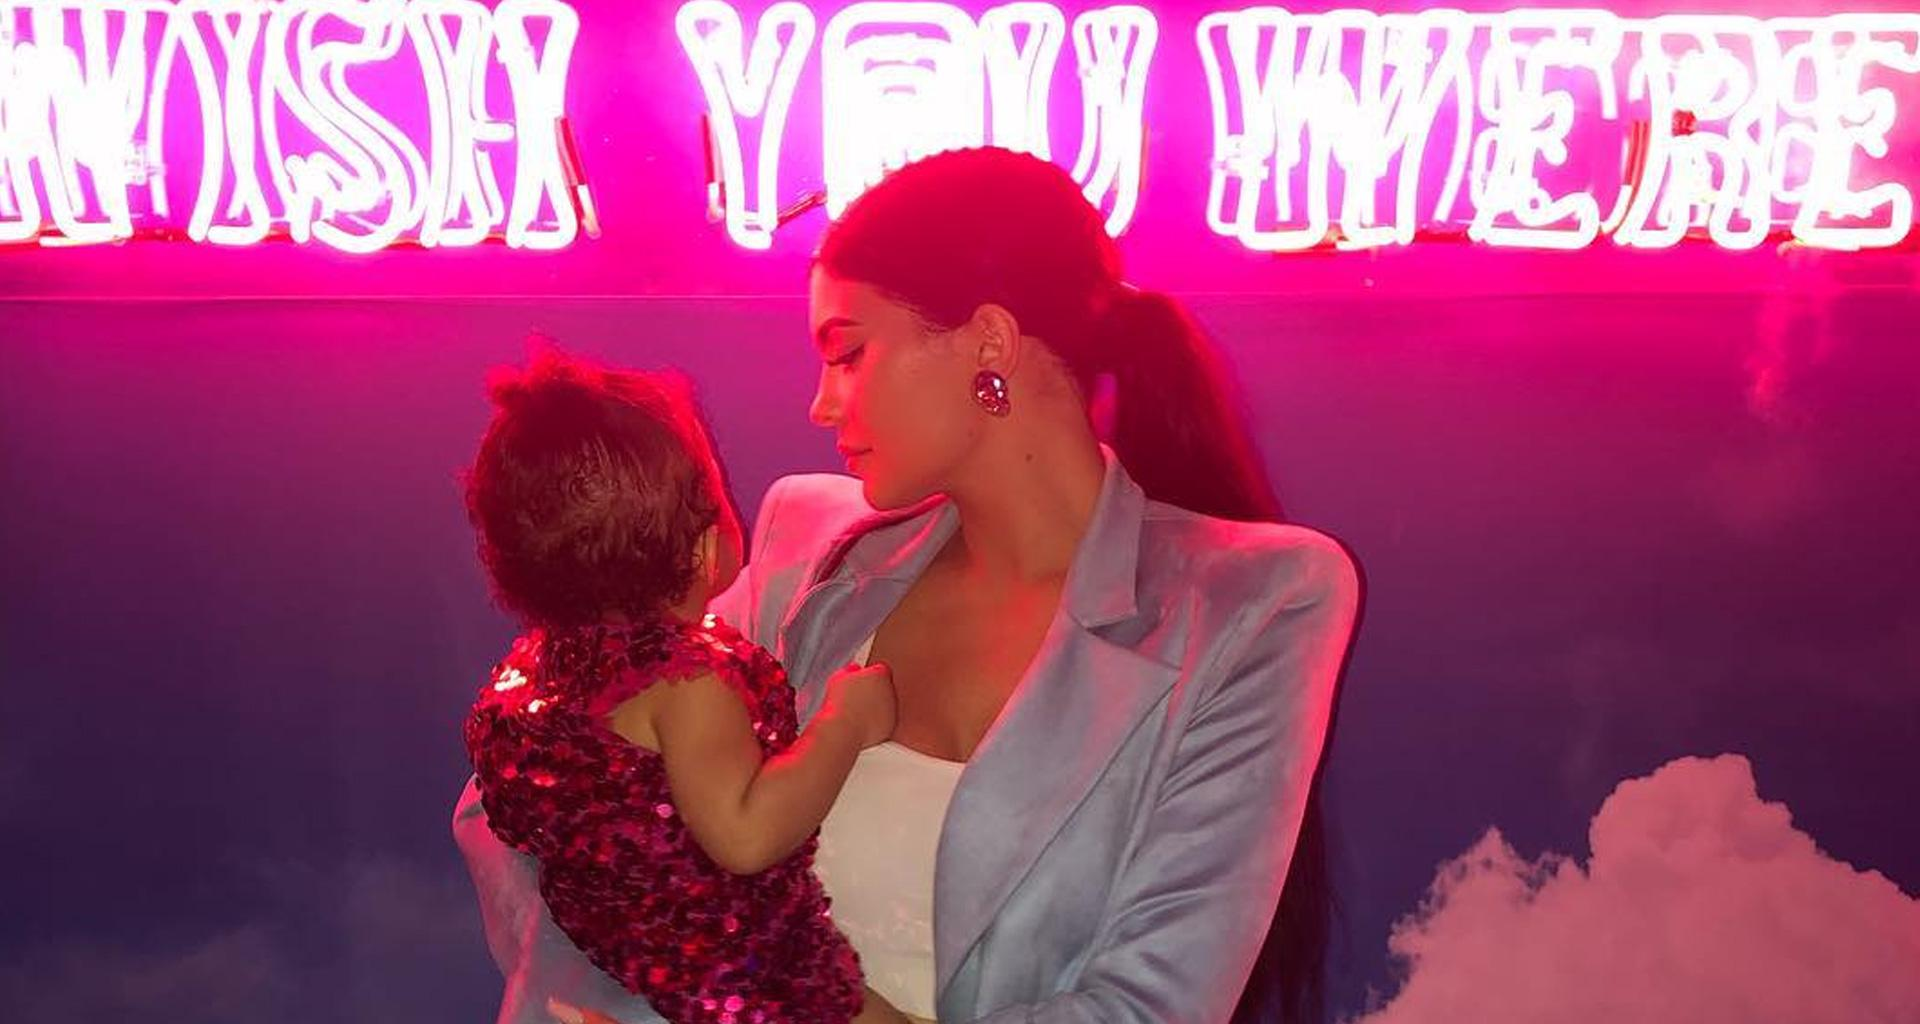 Kylie Jenner Films Herself While Doing Stormi's Hair And People Respect The Fact That She Learned How To Style It